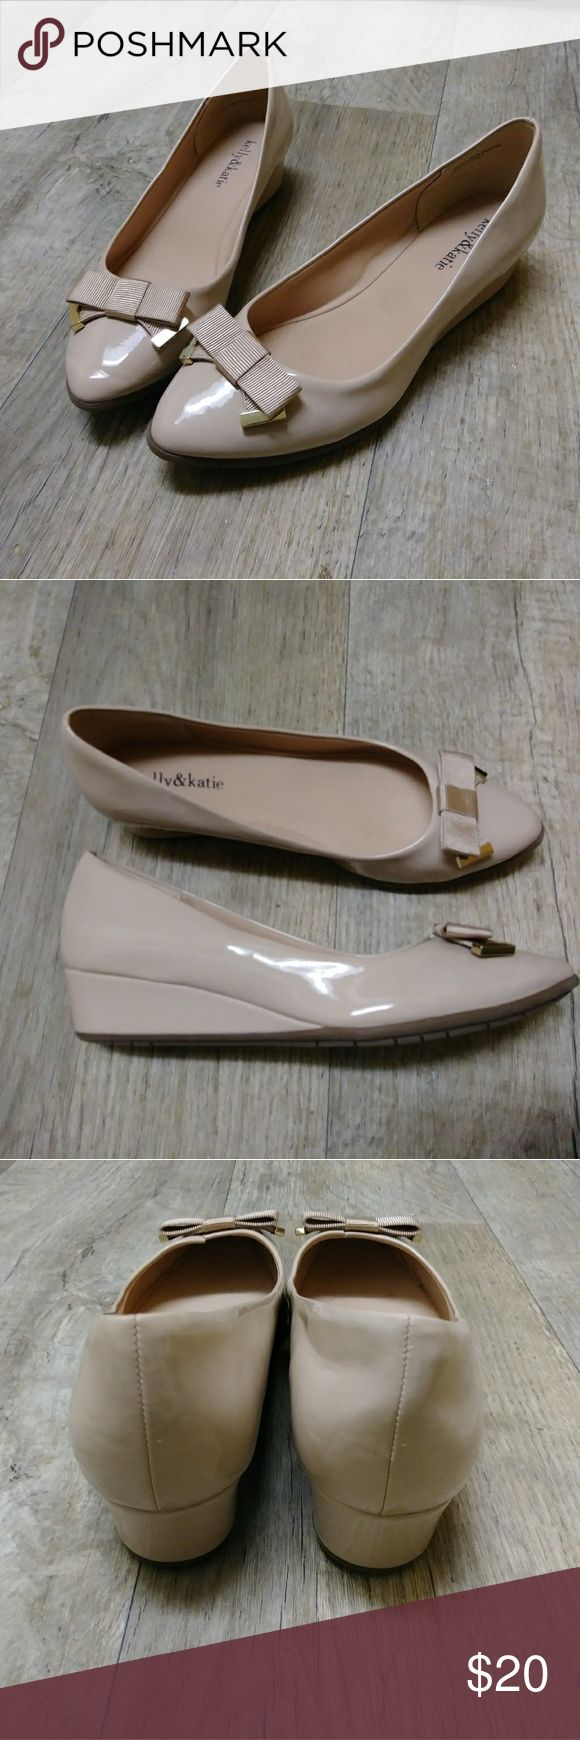 Kelly&Katie Cream Wedges Size 8 Cream wedges with gold accents on the bows. Katie & Kelly Shoes Wedges